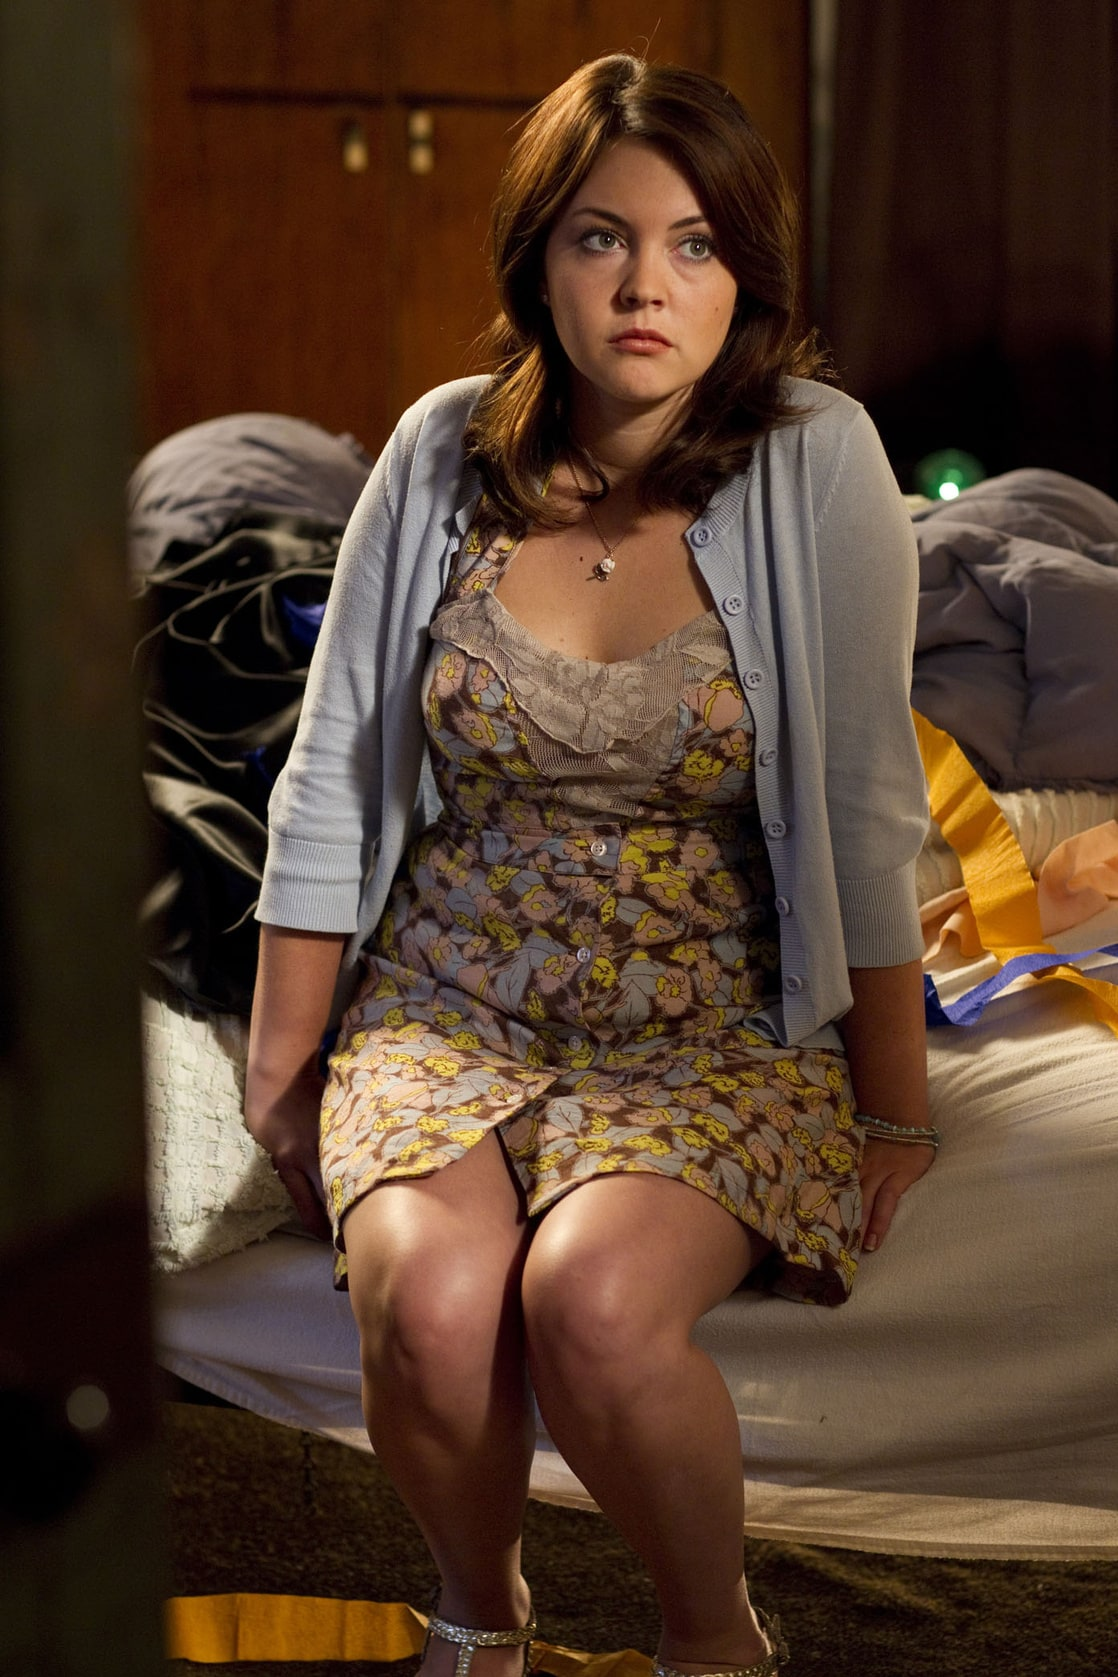 Lacey turner nude sorry